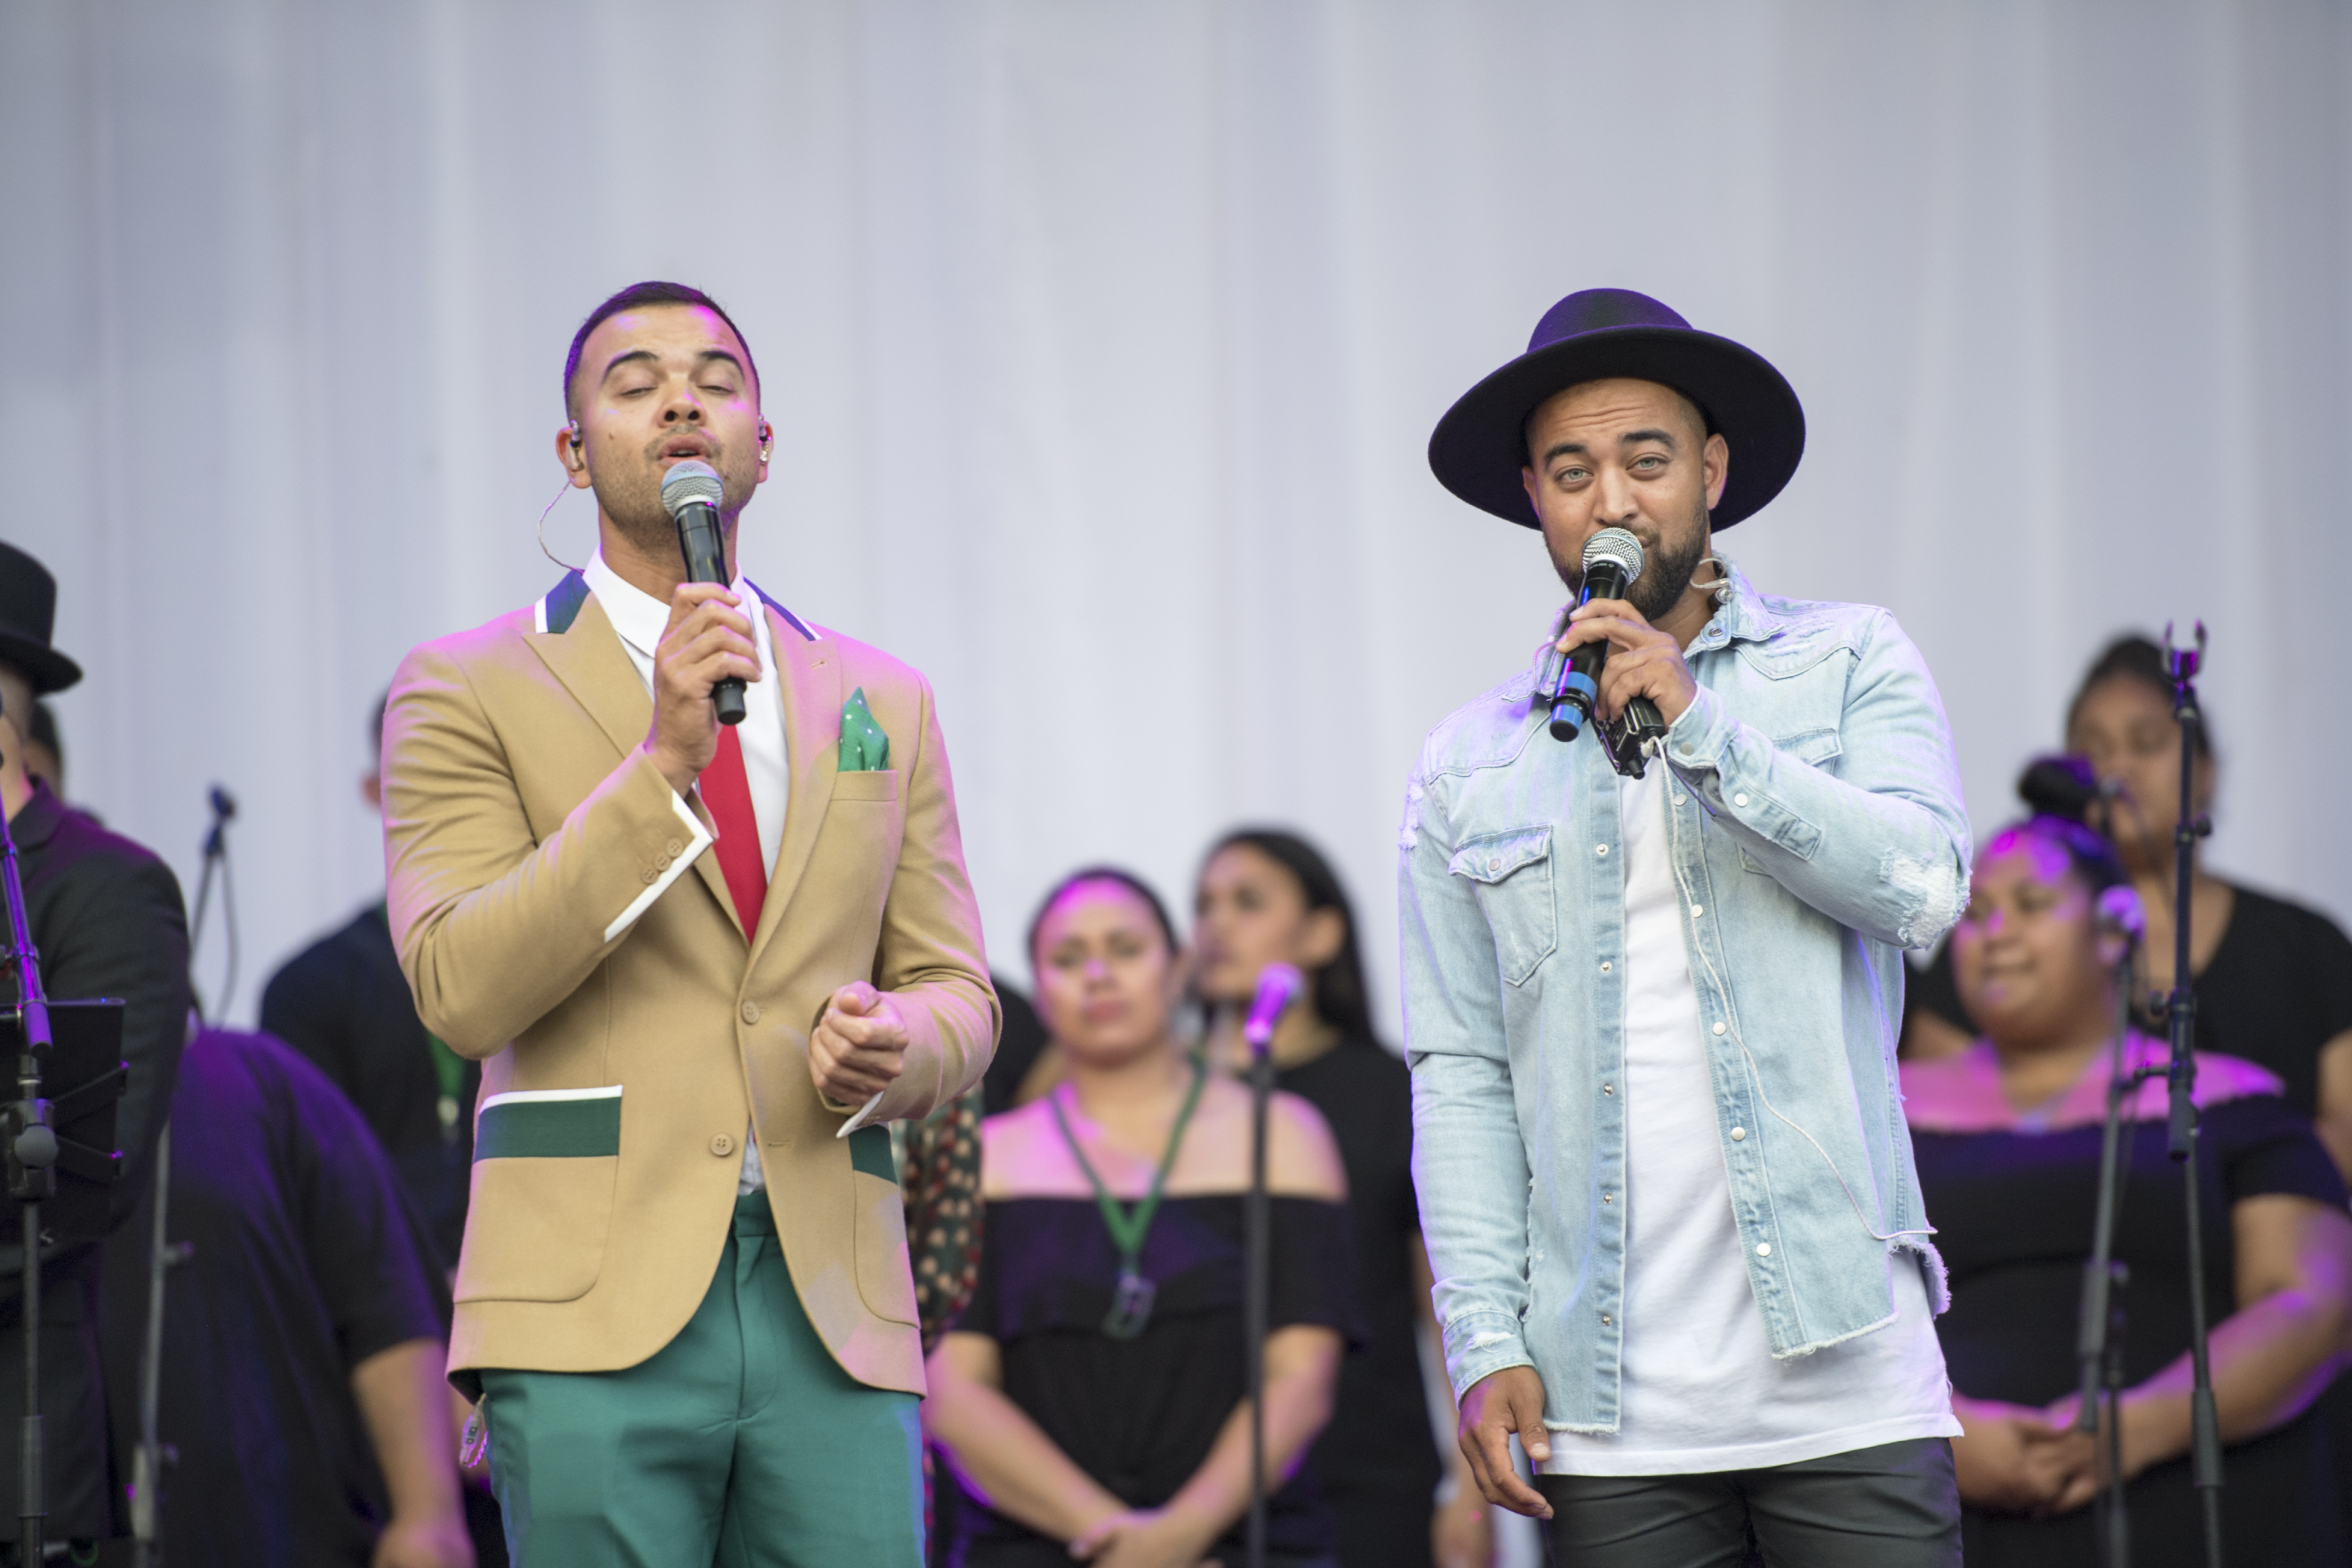 Guy and Chris Sebastian at Carols in the Crescent 2018